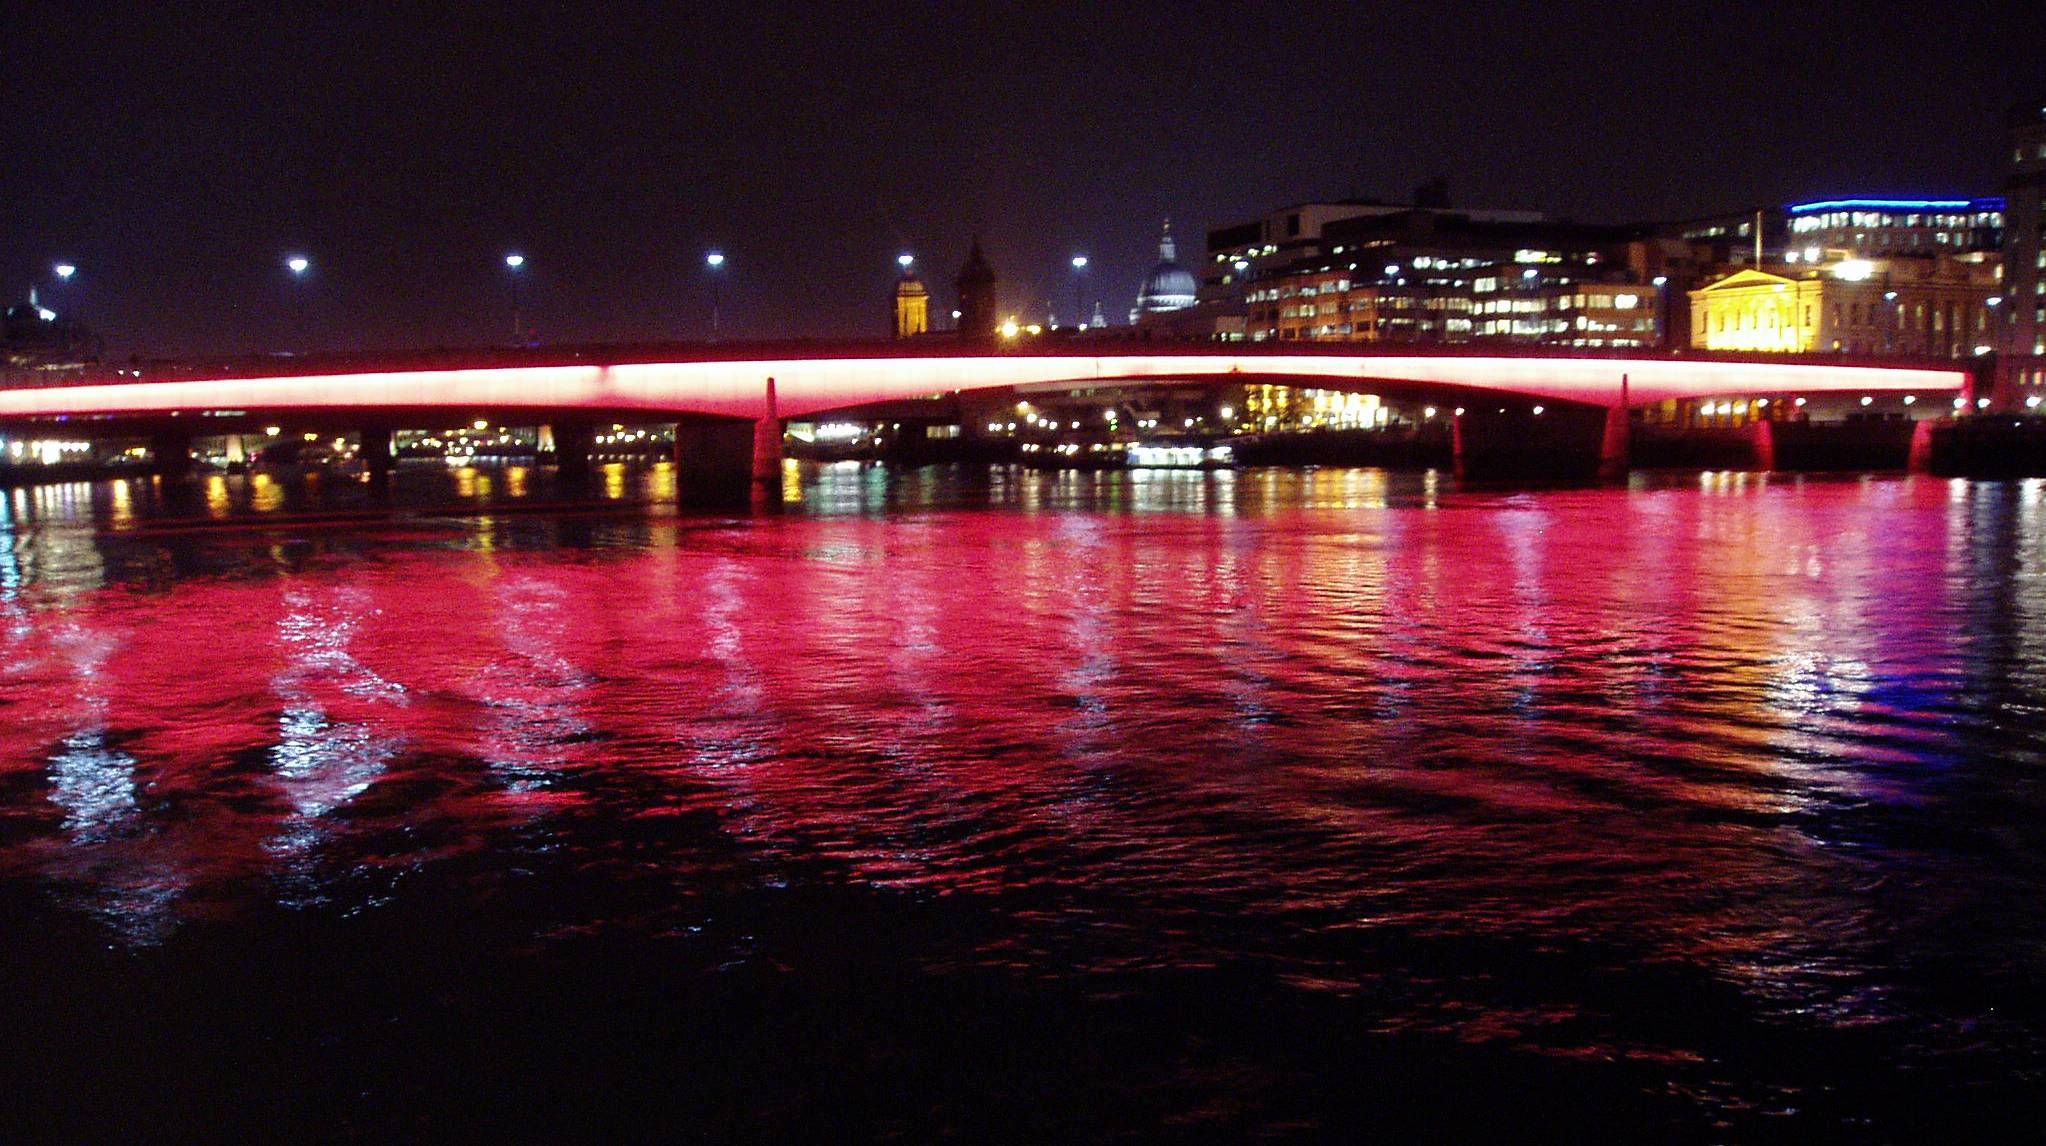 londonbridgeatnight.jpg